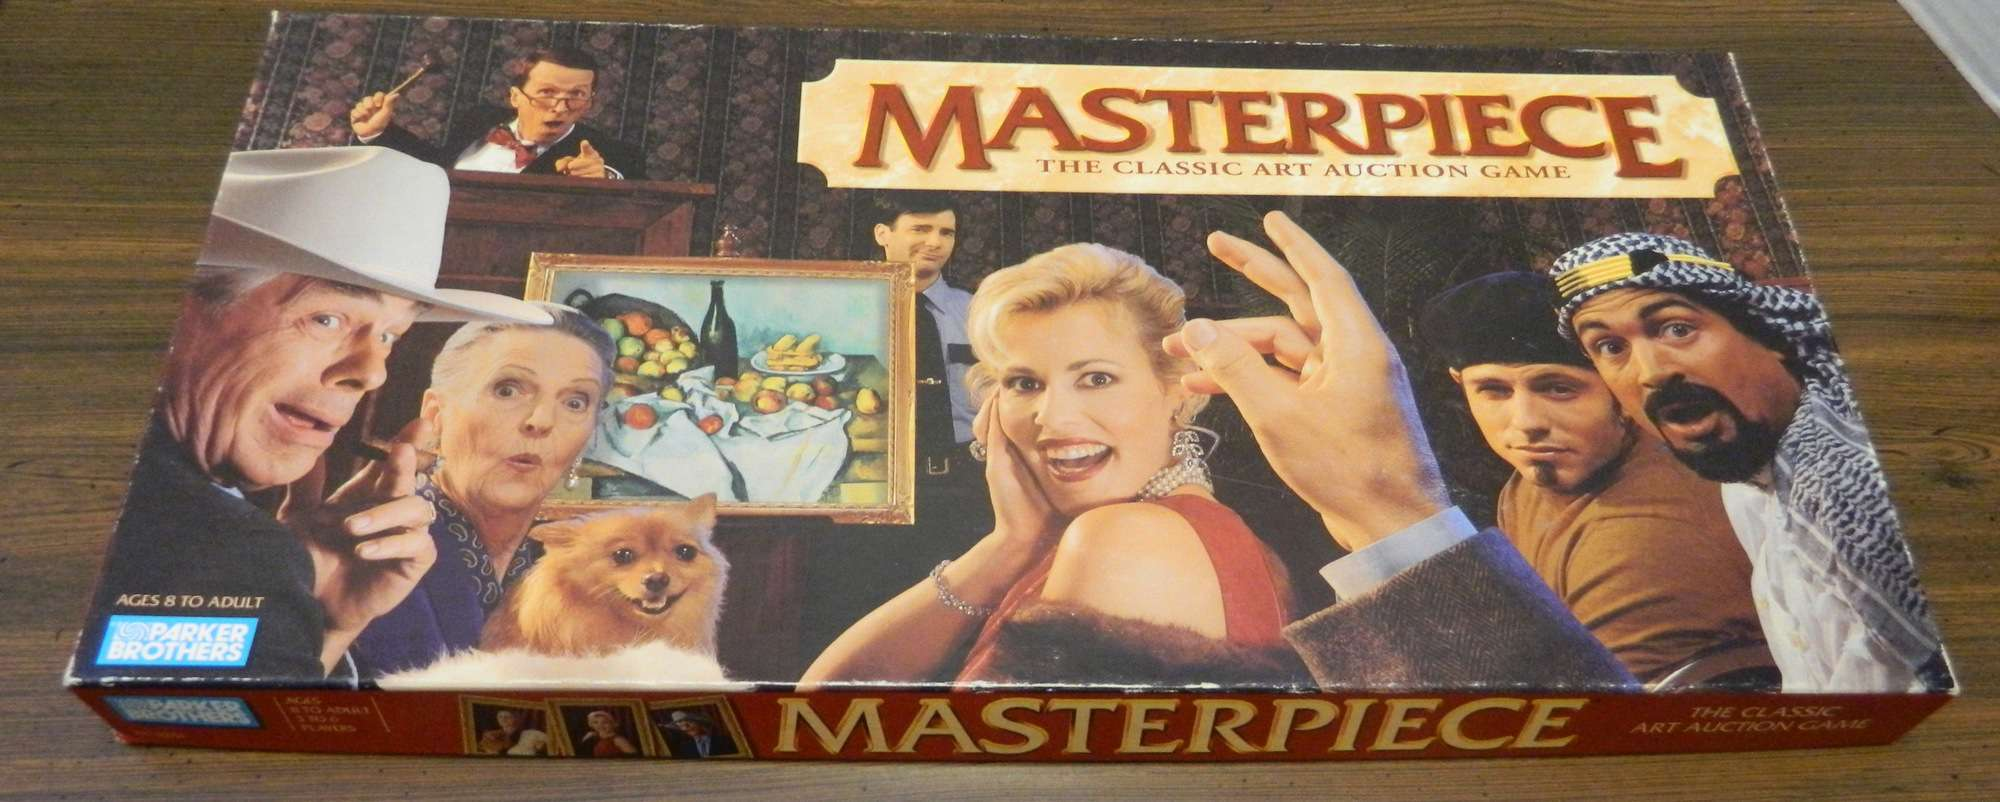 Box for Masterpiece